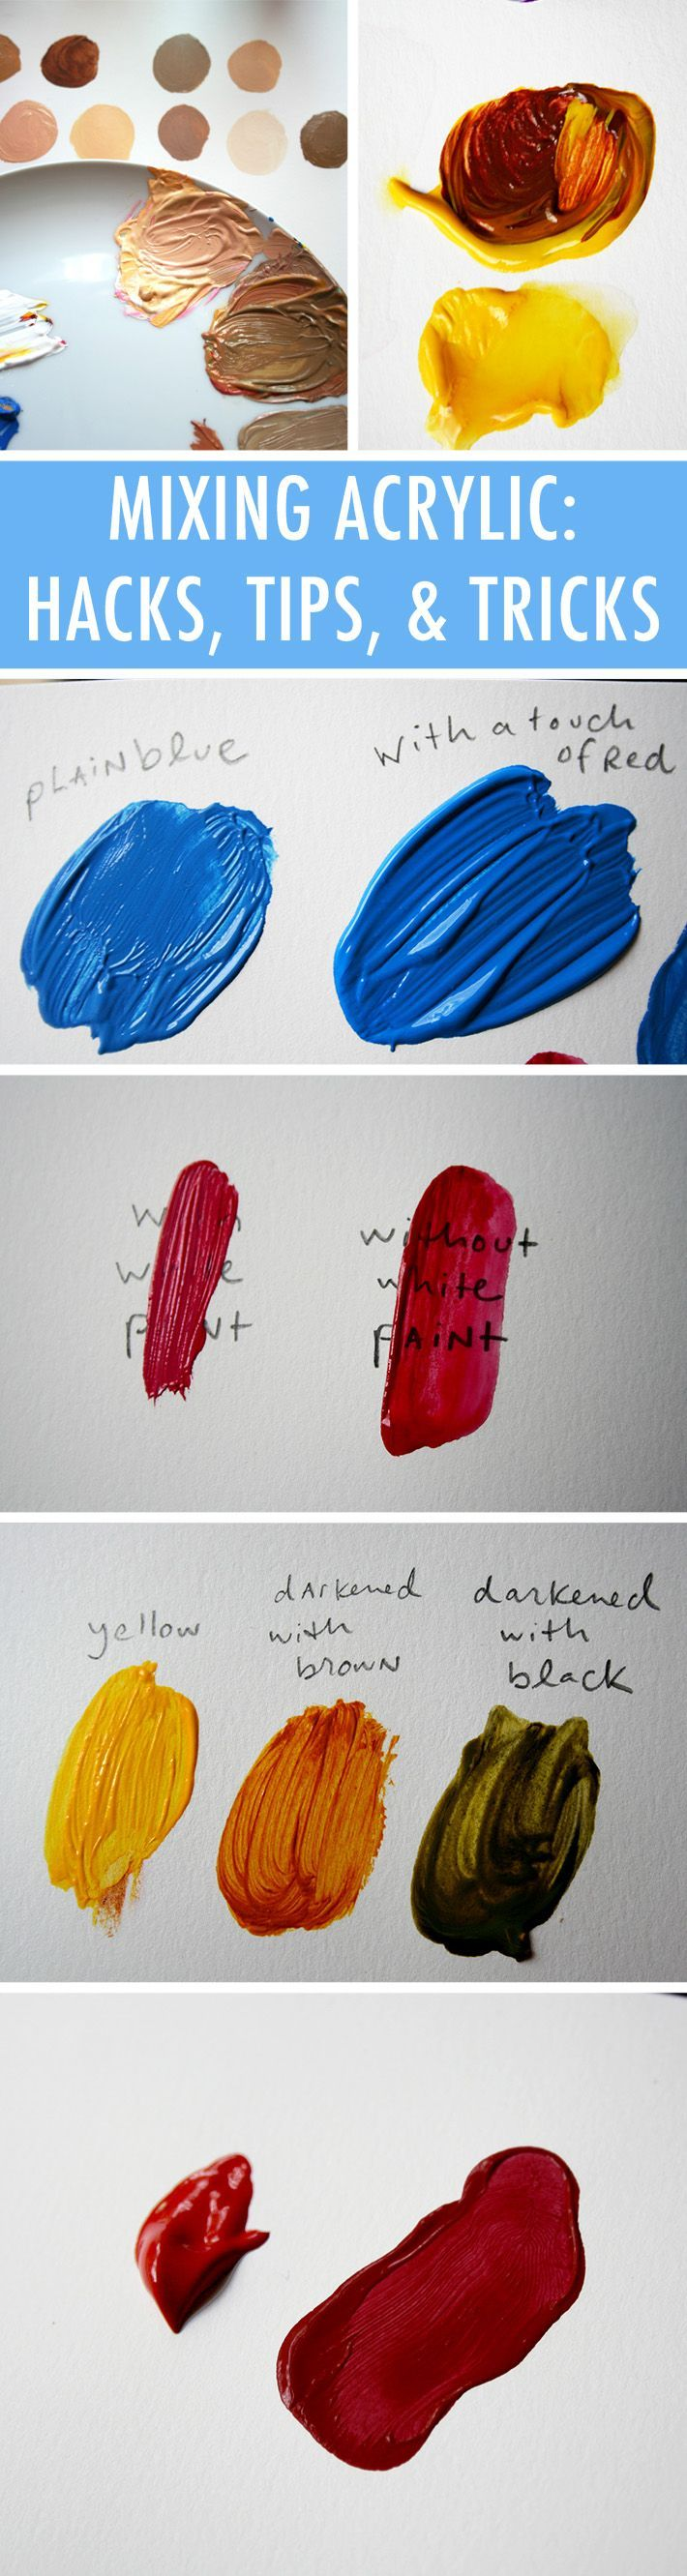 11 Hacks for Mixing Acrylic Paint Perfectly                                                                                                                                                                                 More